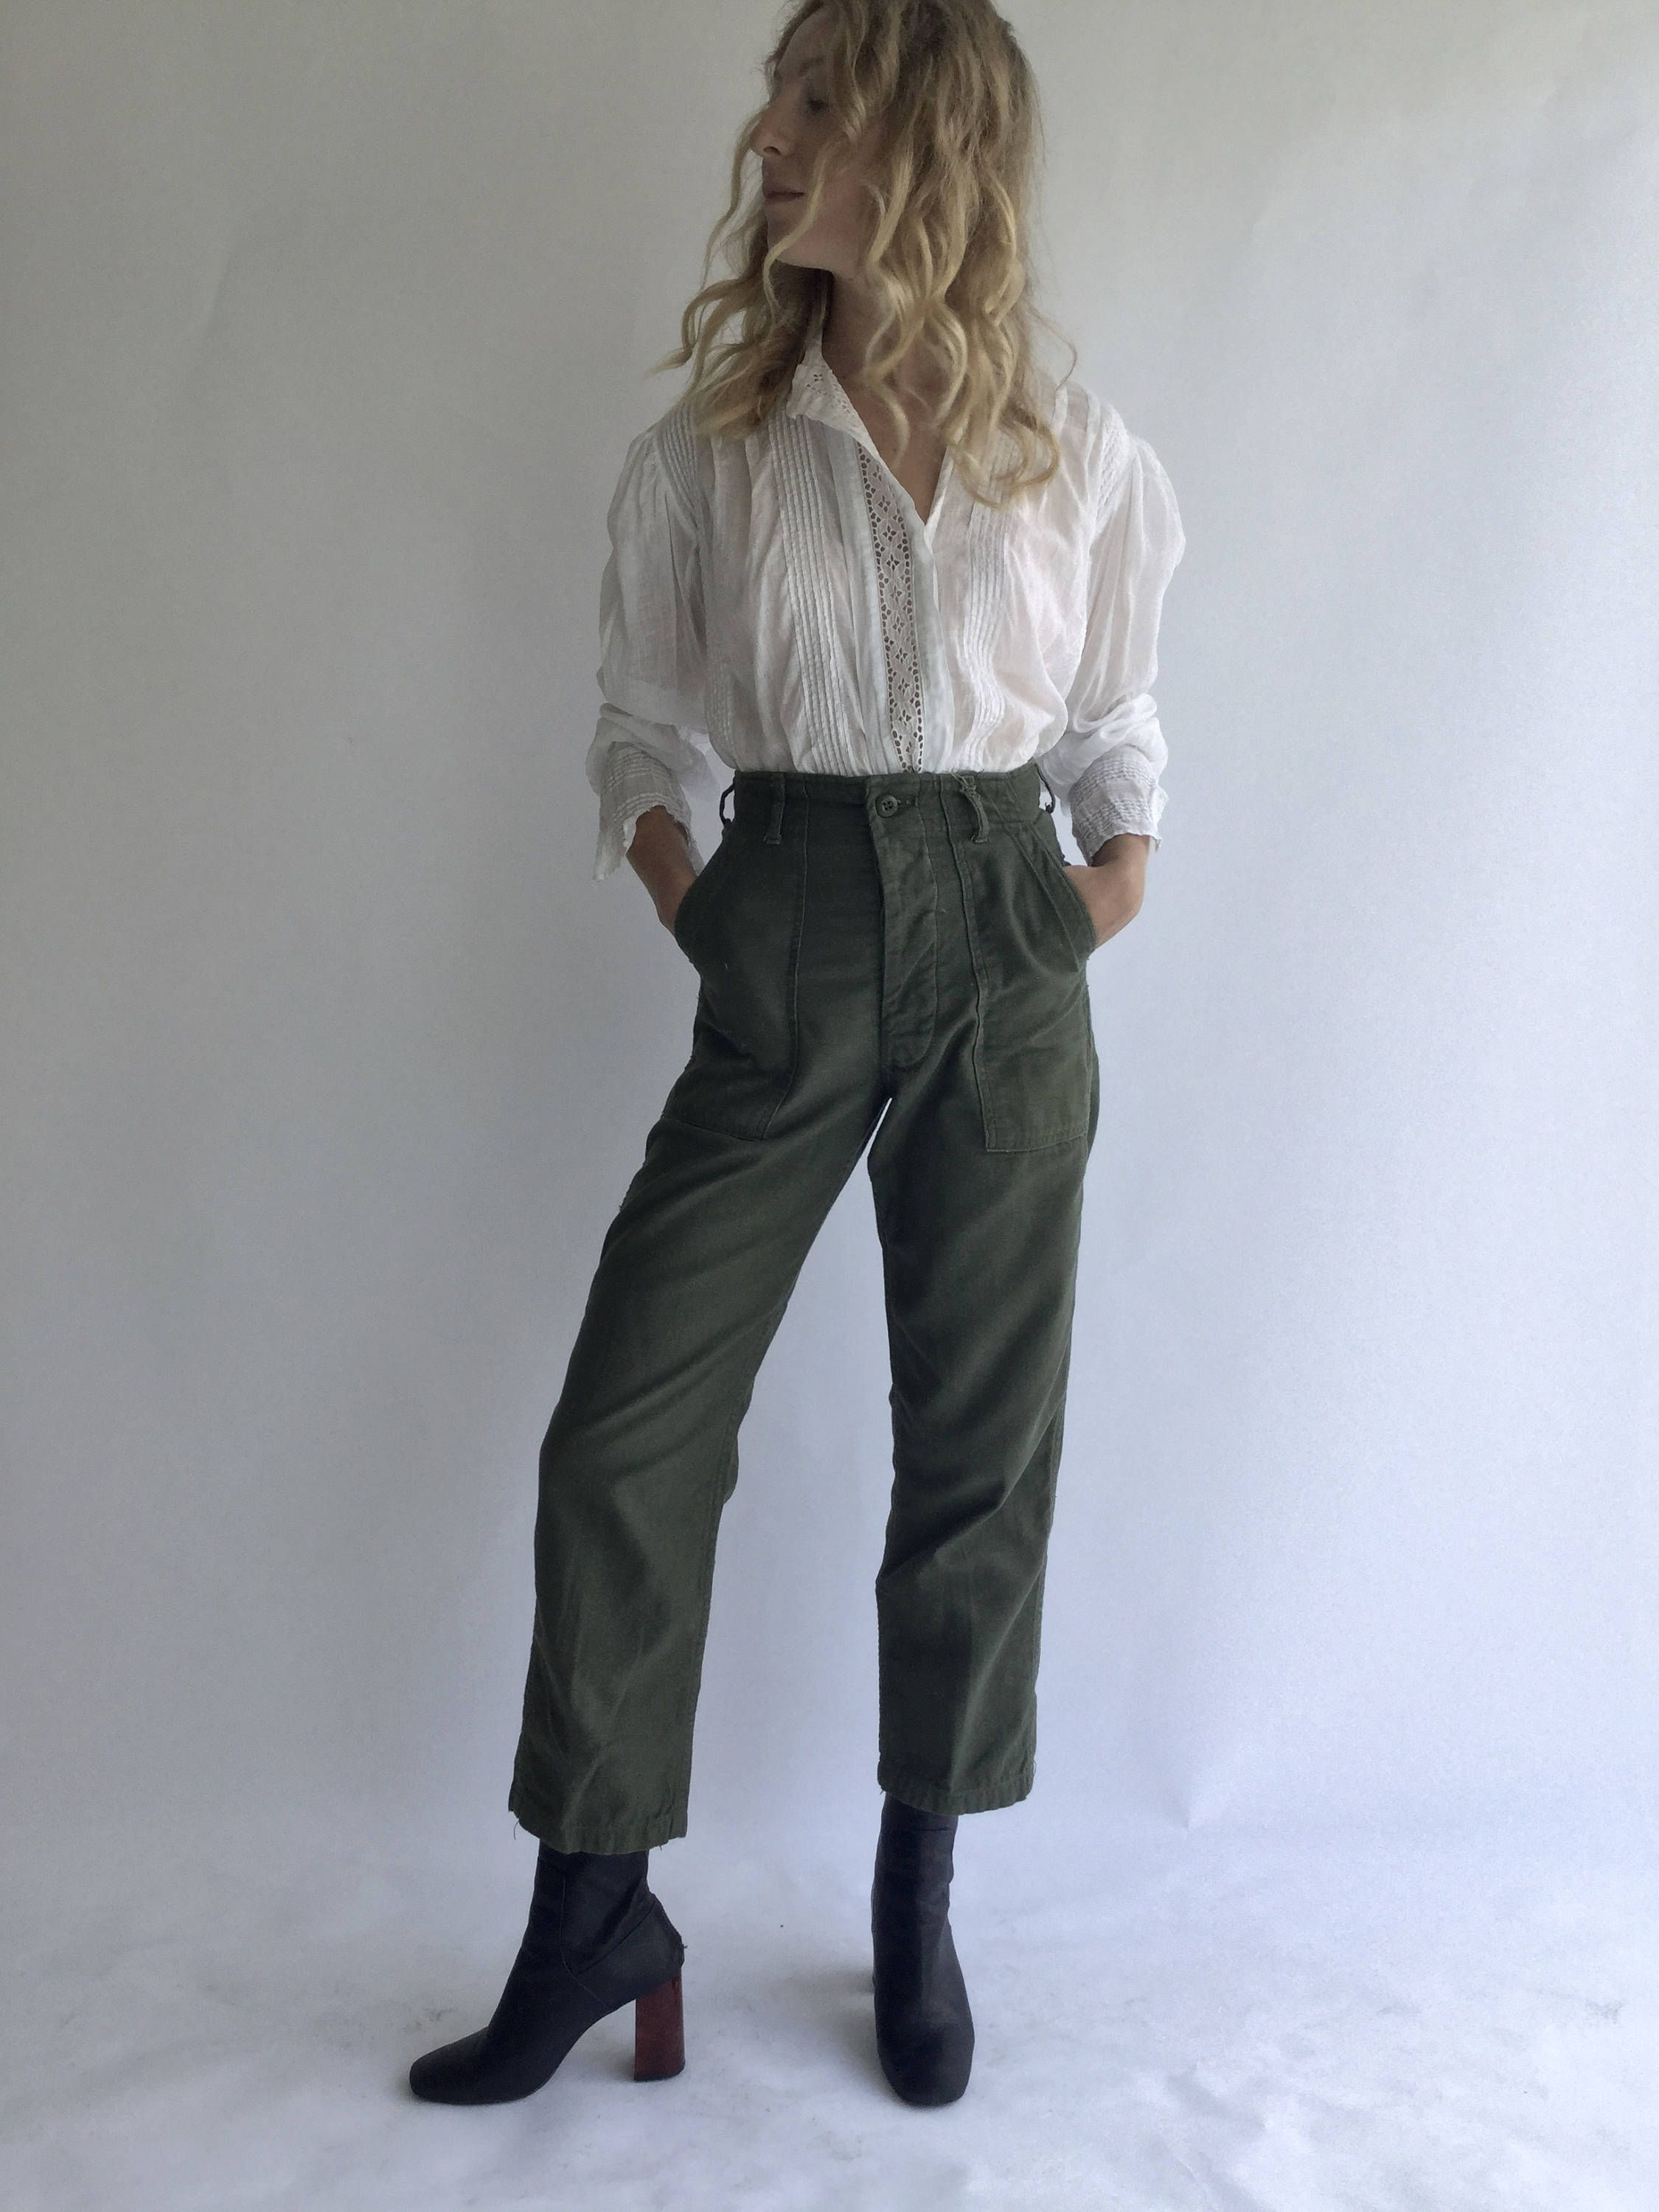 8a305e4397 Vintage 27 28 Waist Slim Olive Green Army Pants Trousers | 80s Utility  Fatigues | OG 107 Patch see Size RUN